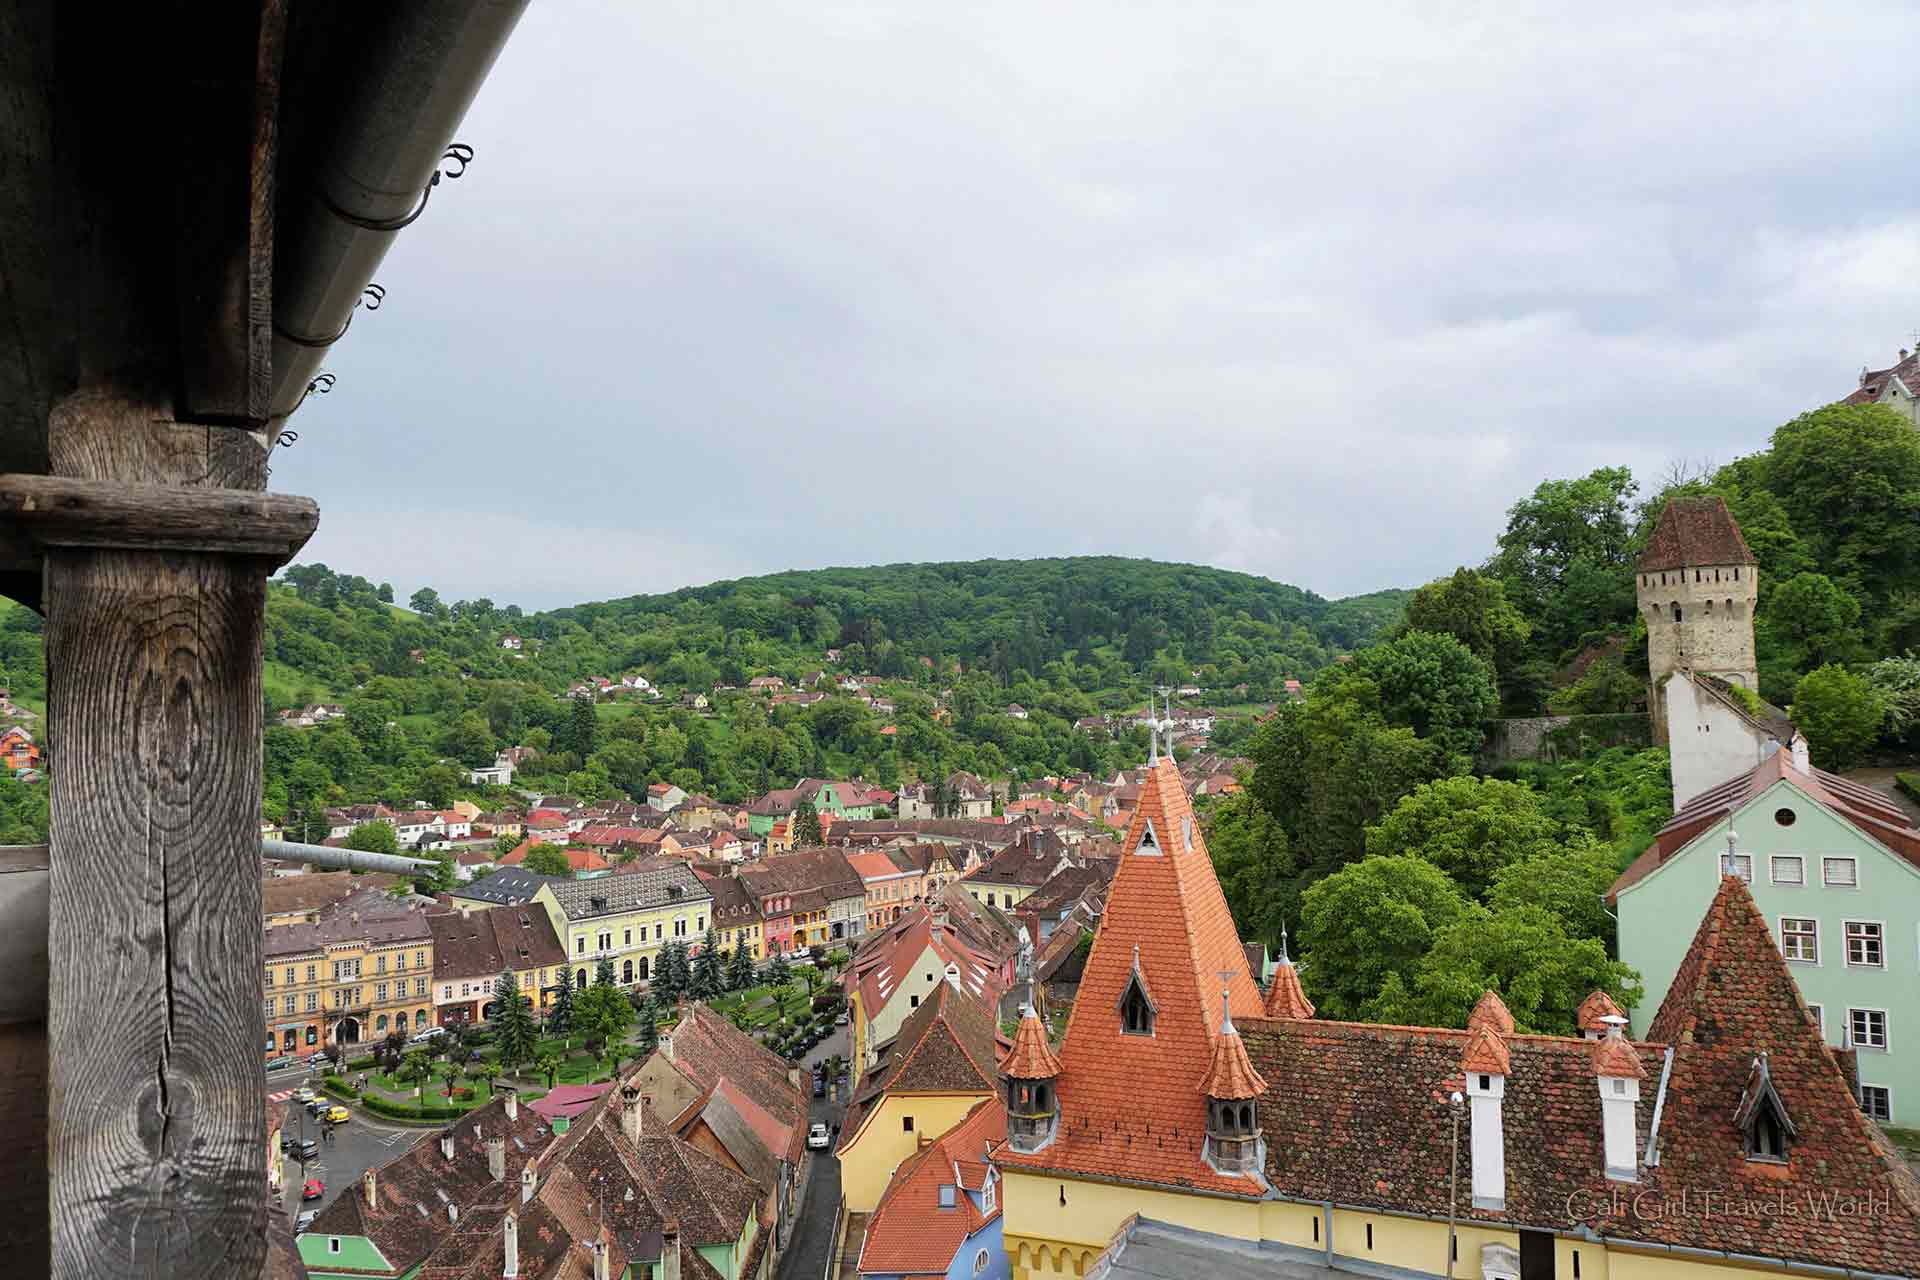 Pretty View overlooking the citadel of Sighisoara and all it's colorful european buildings.